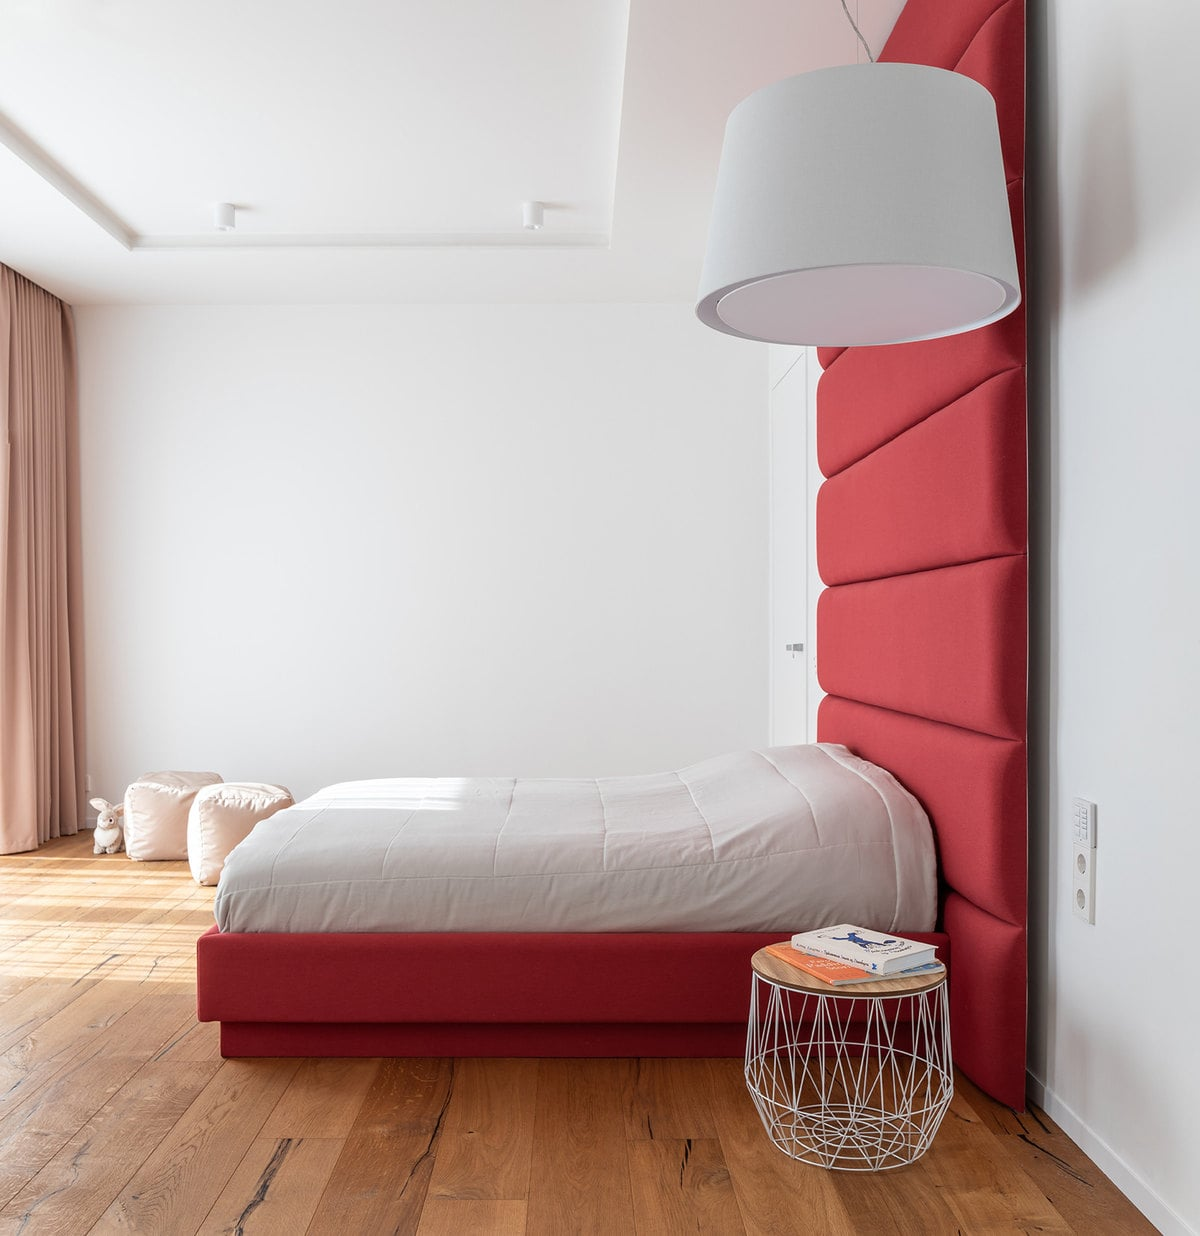 This other bedroom has white walls and white ceiling to make the red structures of the stand out. The red patform bed also stands out against the hardwood flooring.